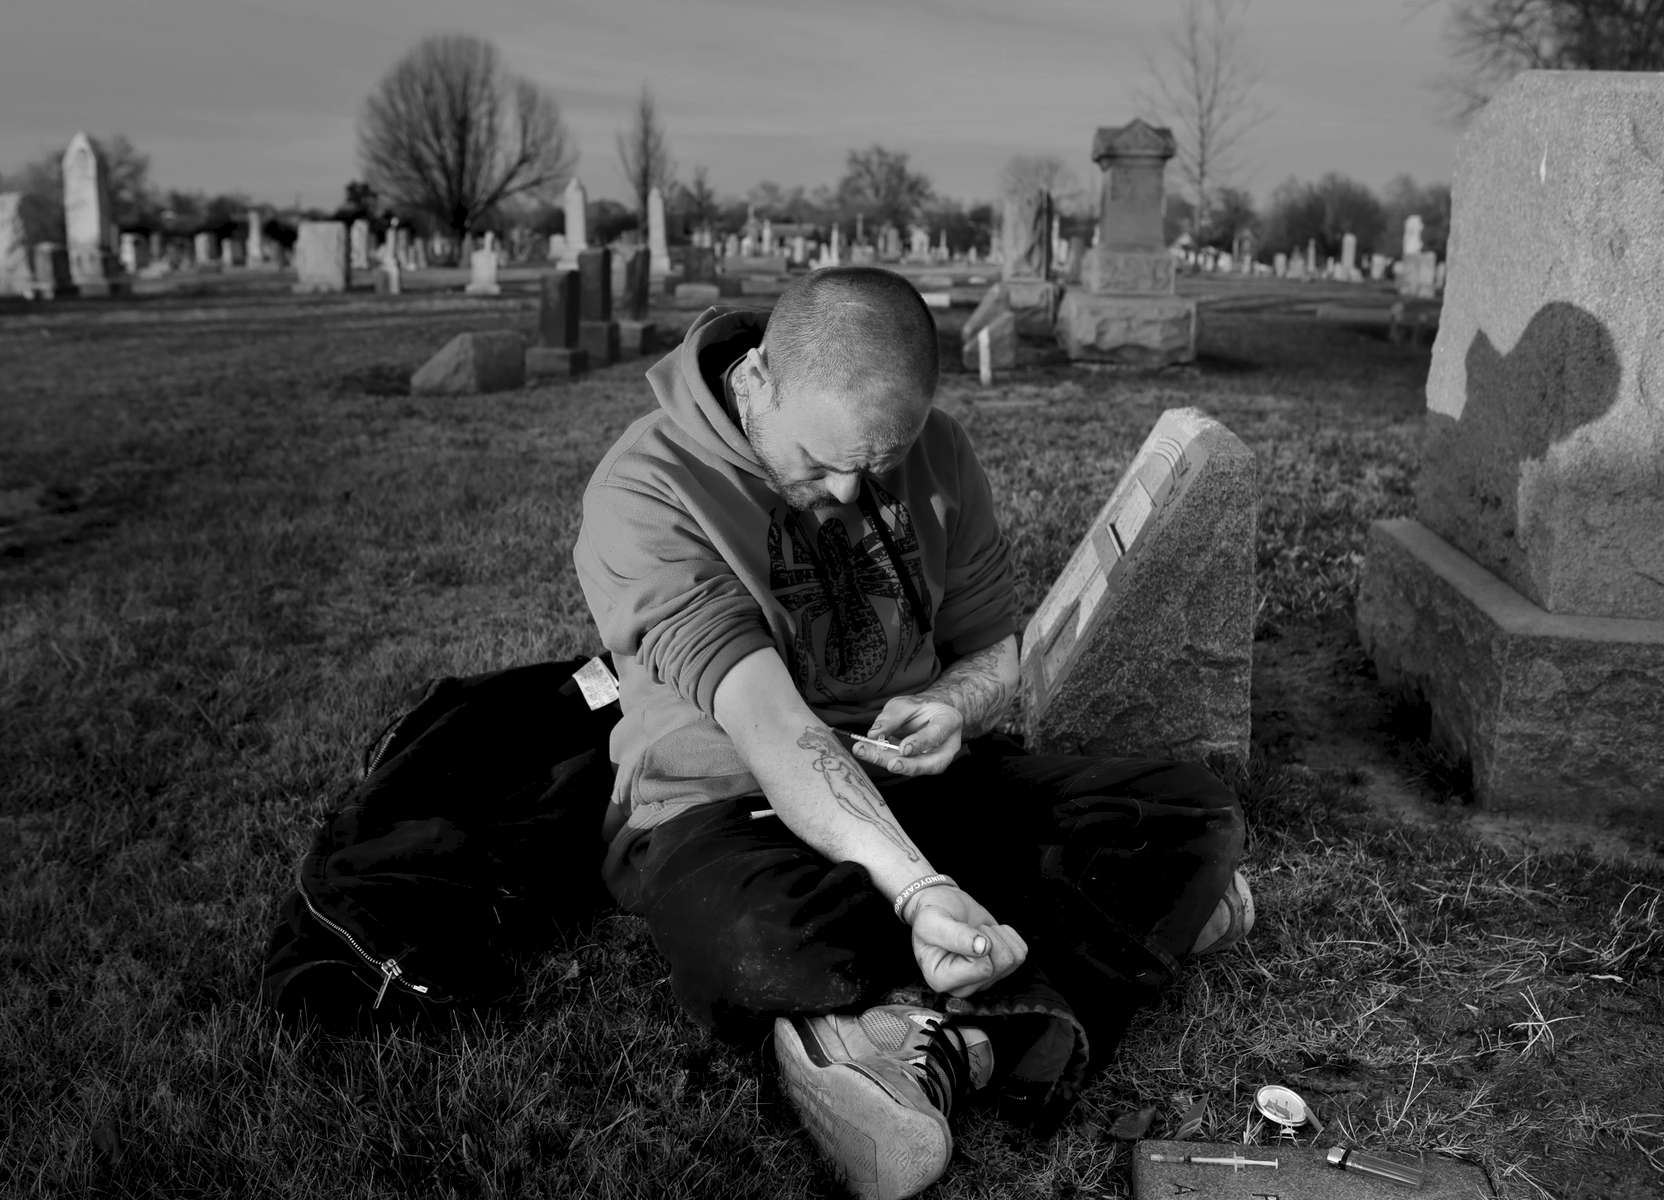 Richard Skinner shoots a mix of heroin and meth called a speedball in a quiet spot of cemetery in south St. Louis on Thursday, Feb. 16, 2017. {quote}Death ain't nothing to me anymore{quote} says Skinner who had to be revived by paramedics from a a near fatal overdose just a few weeks ago. Photo by David Carson, dcarson@post-dispatch.com